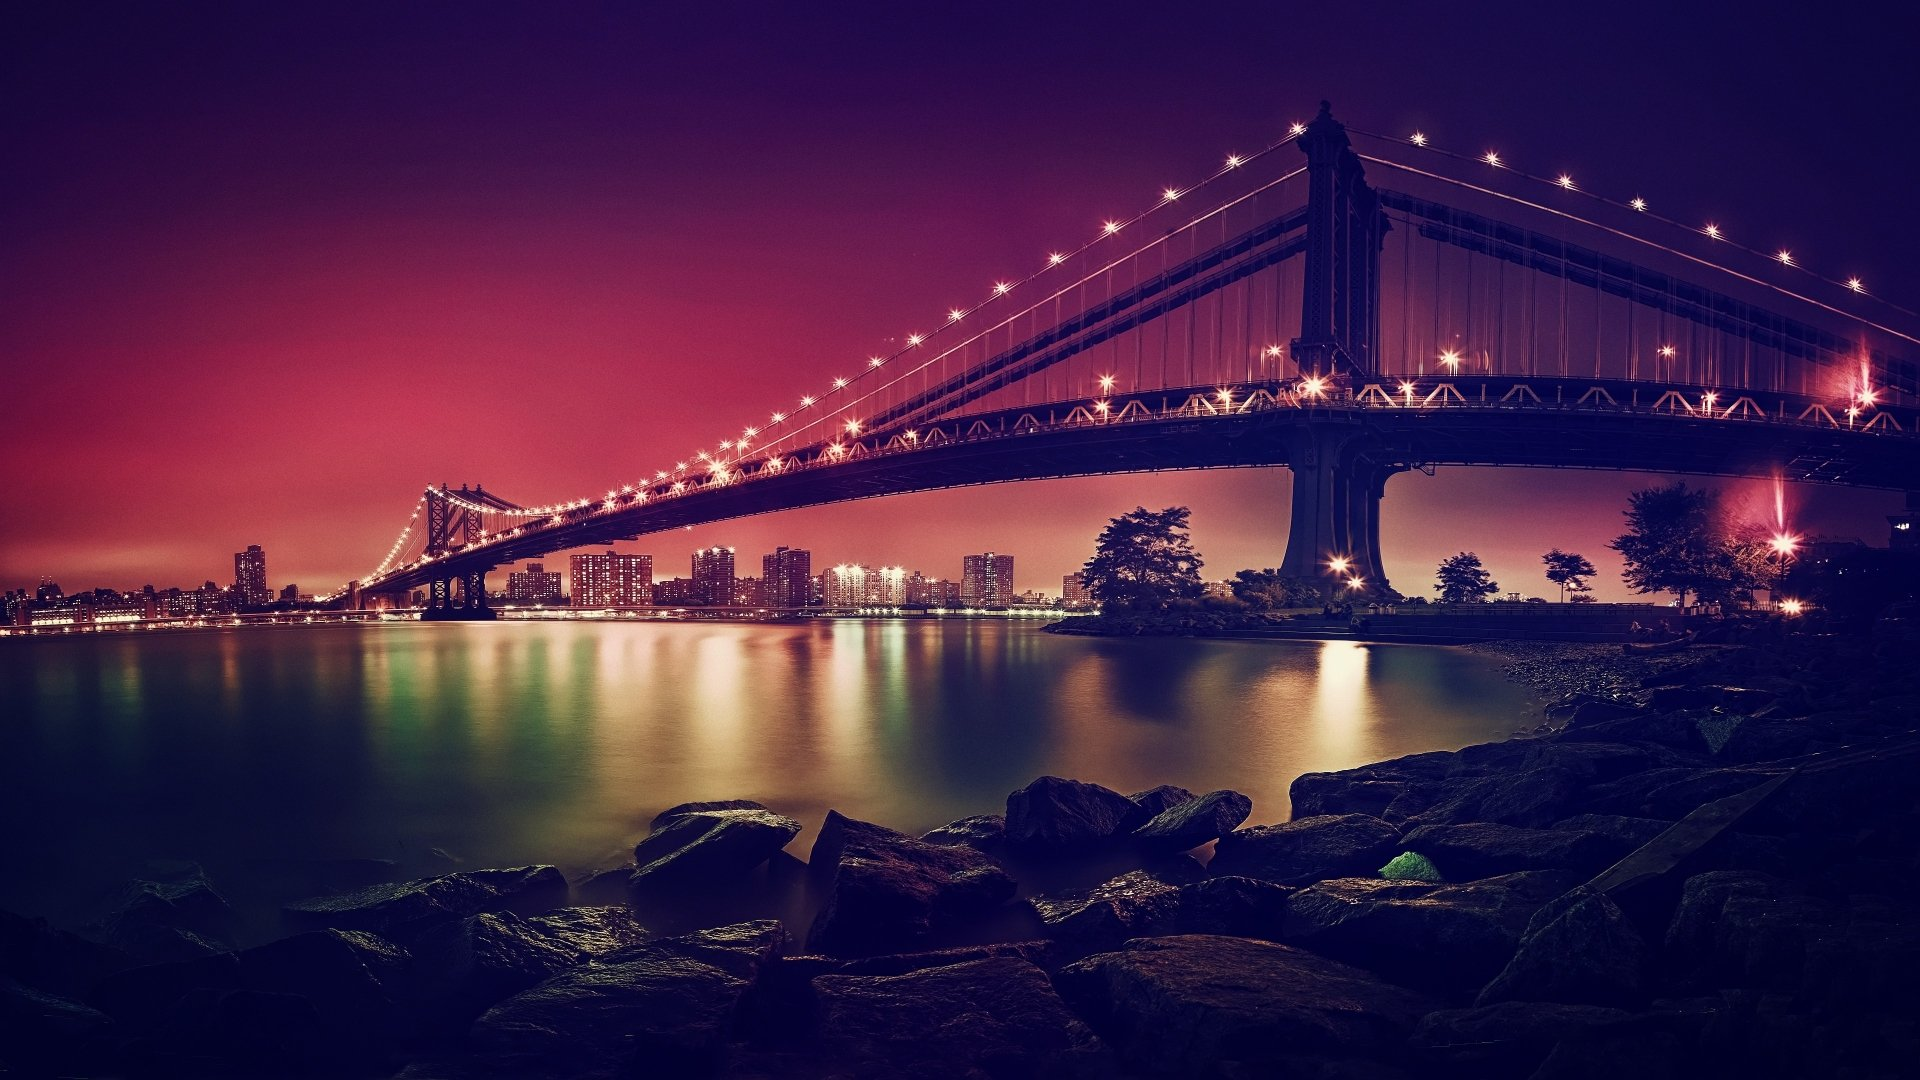 Man Made - Manhattan Bridge  New York Bridge Water Bay Night Light Wallpaper